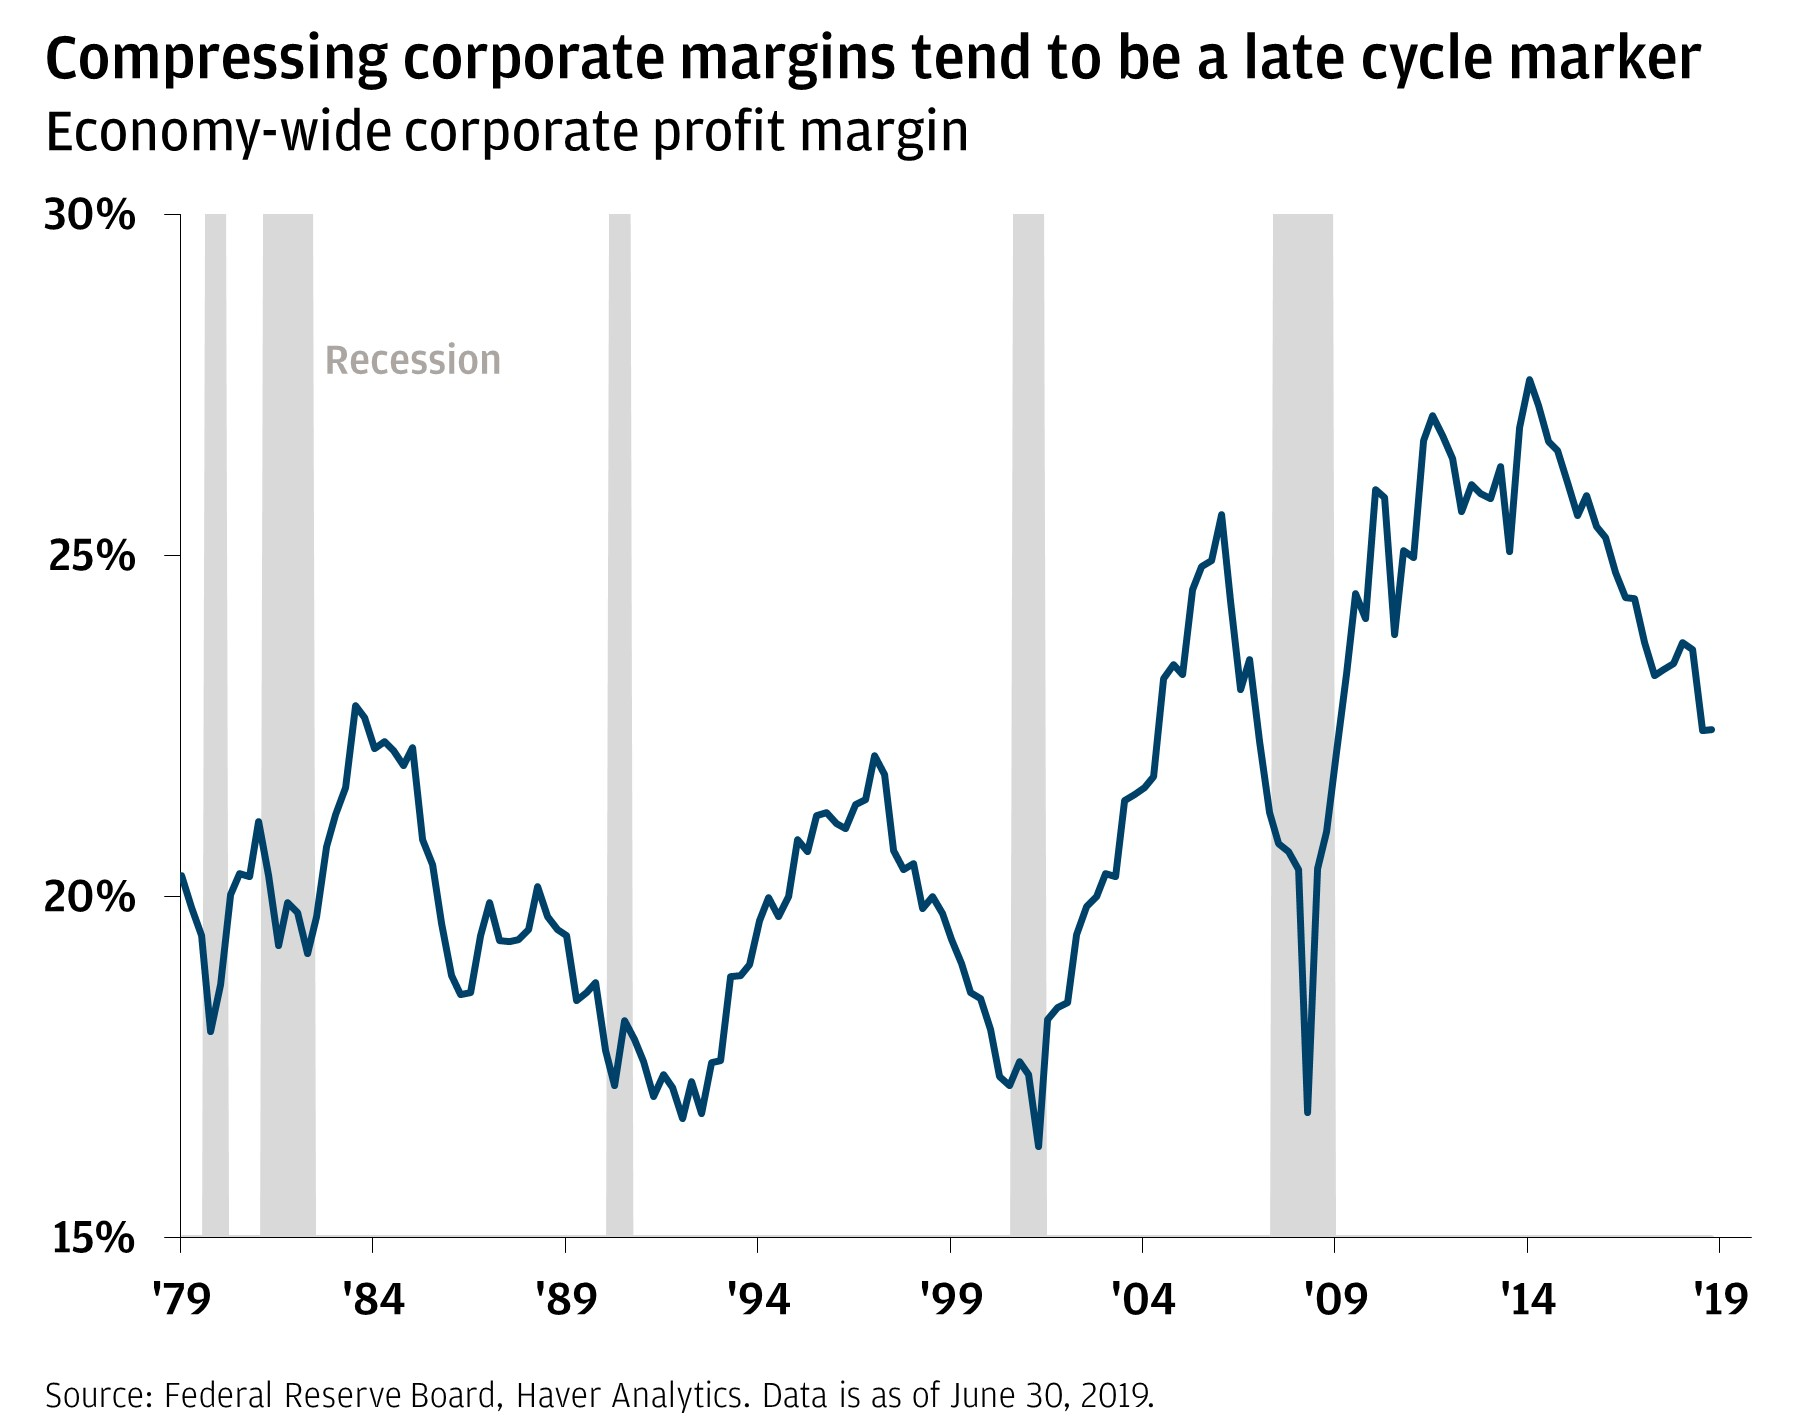 Compressing corporate margins tend to be a late-cycle marker